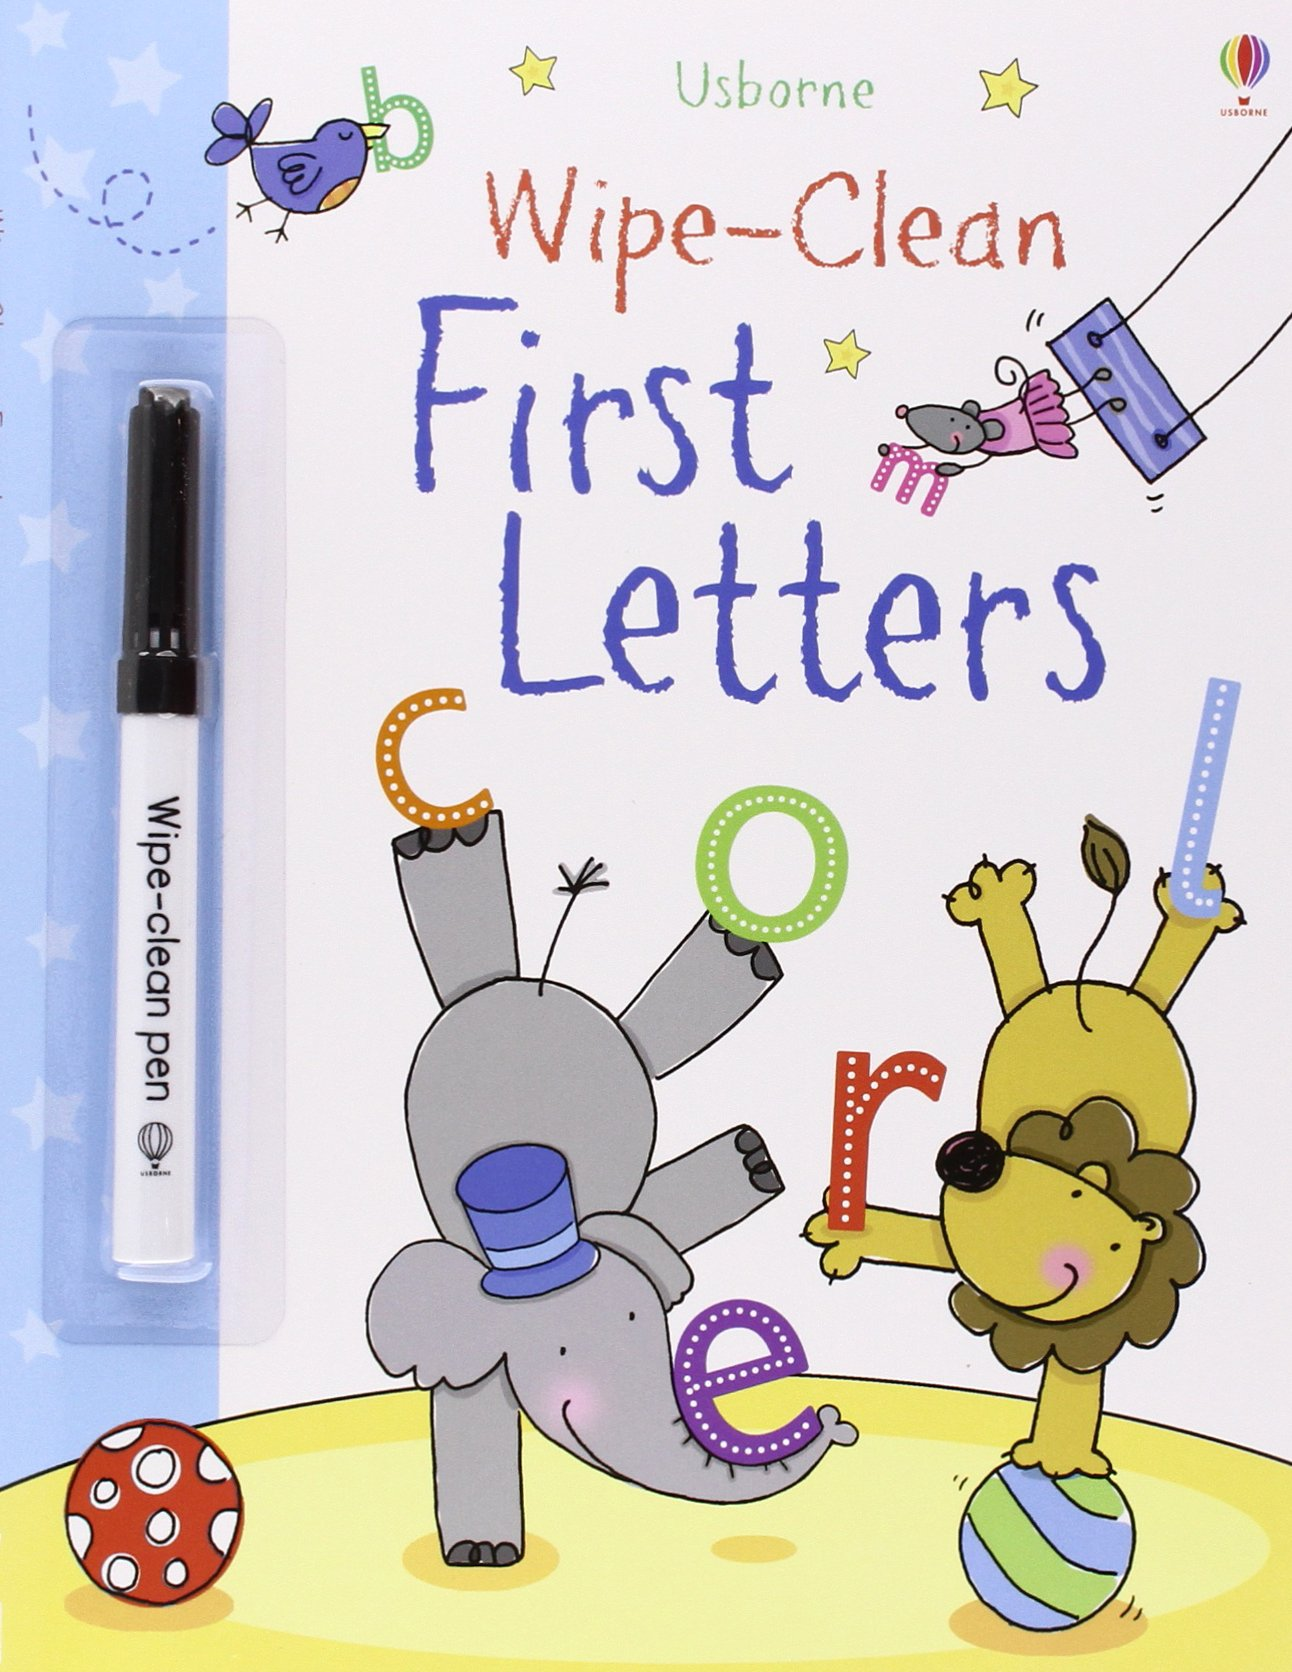 First Letters Usborne Clean Books product image